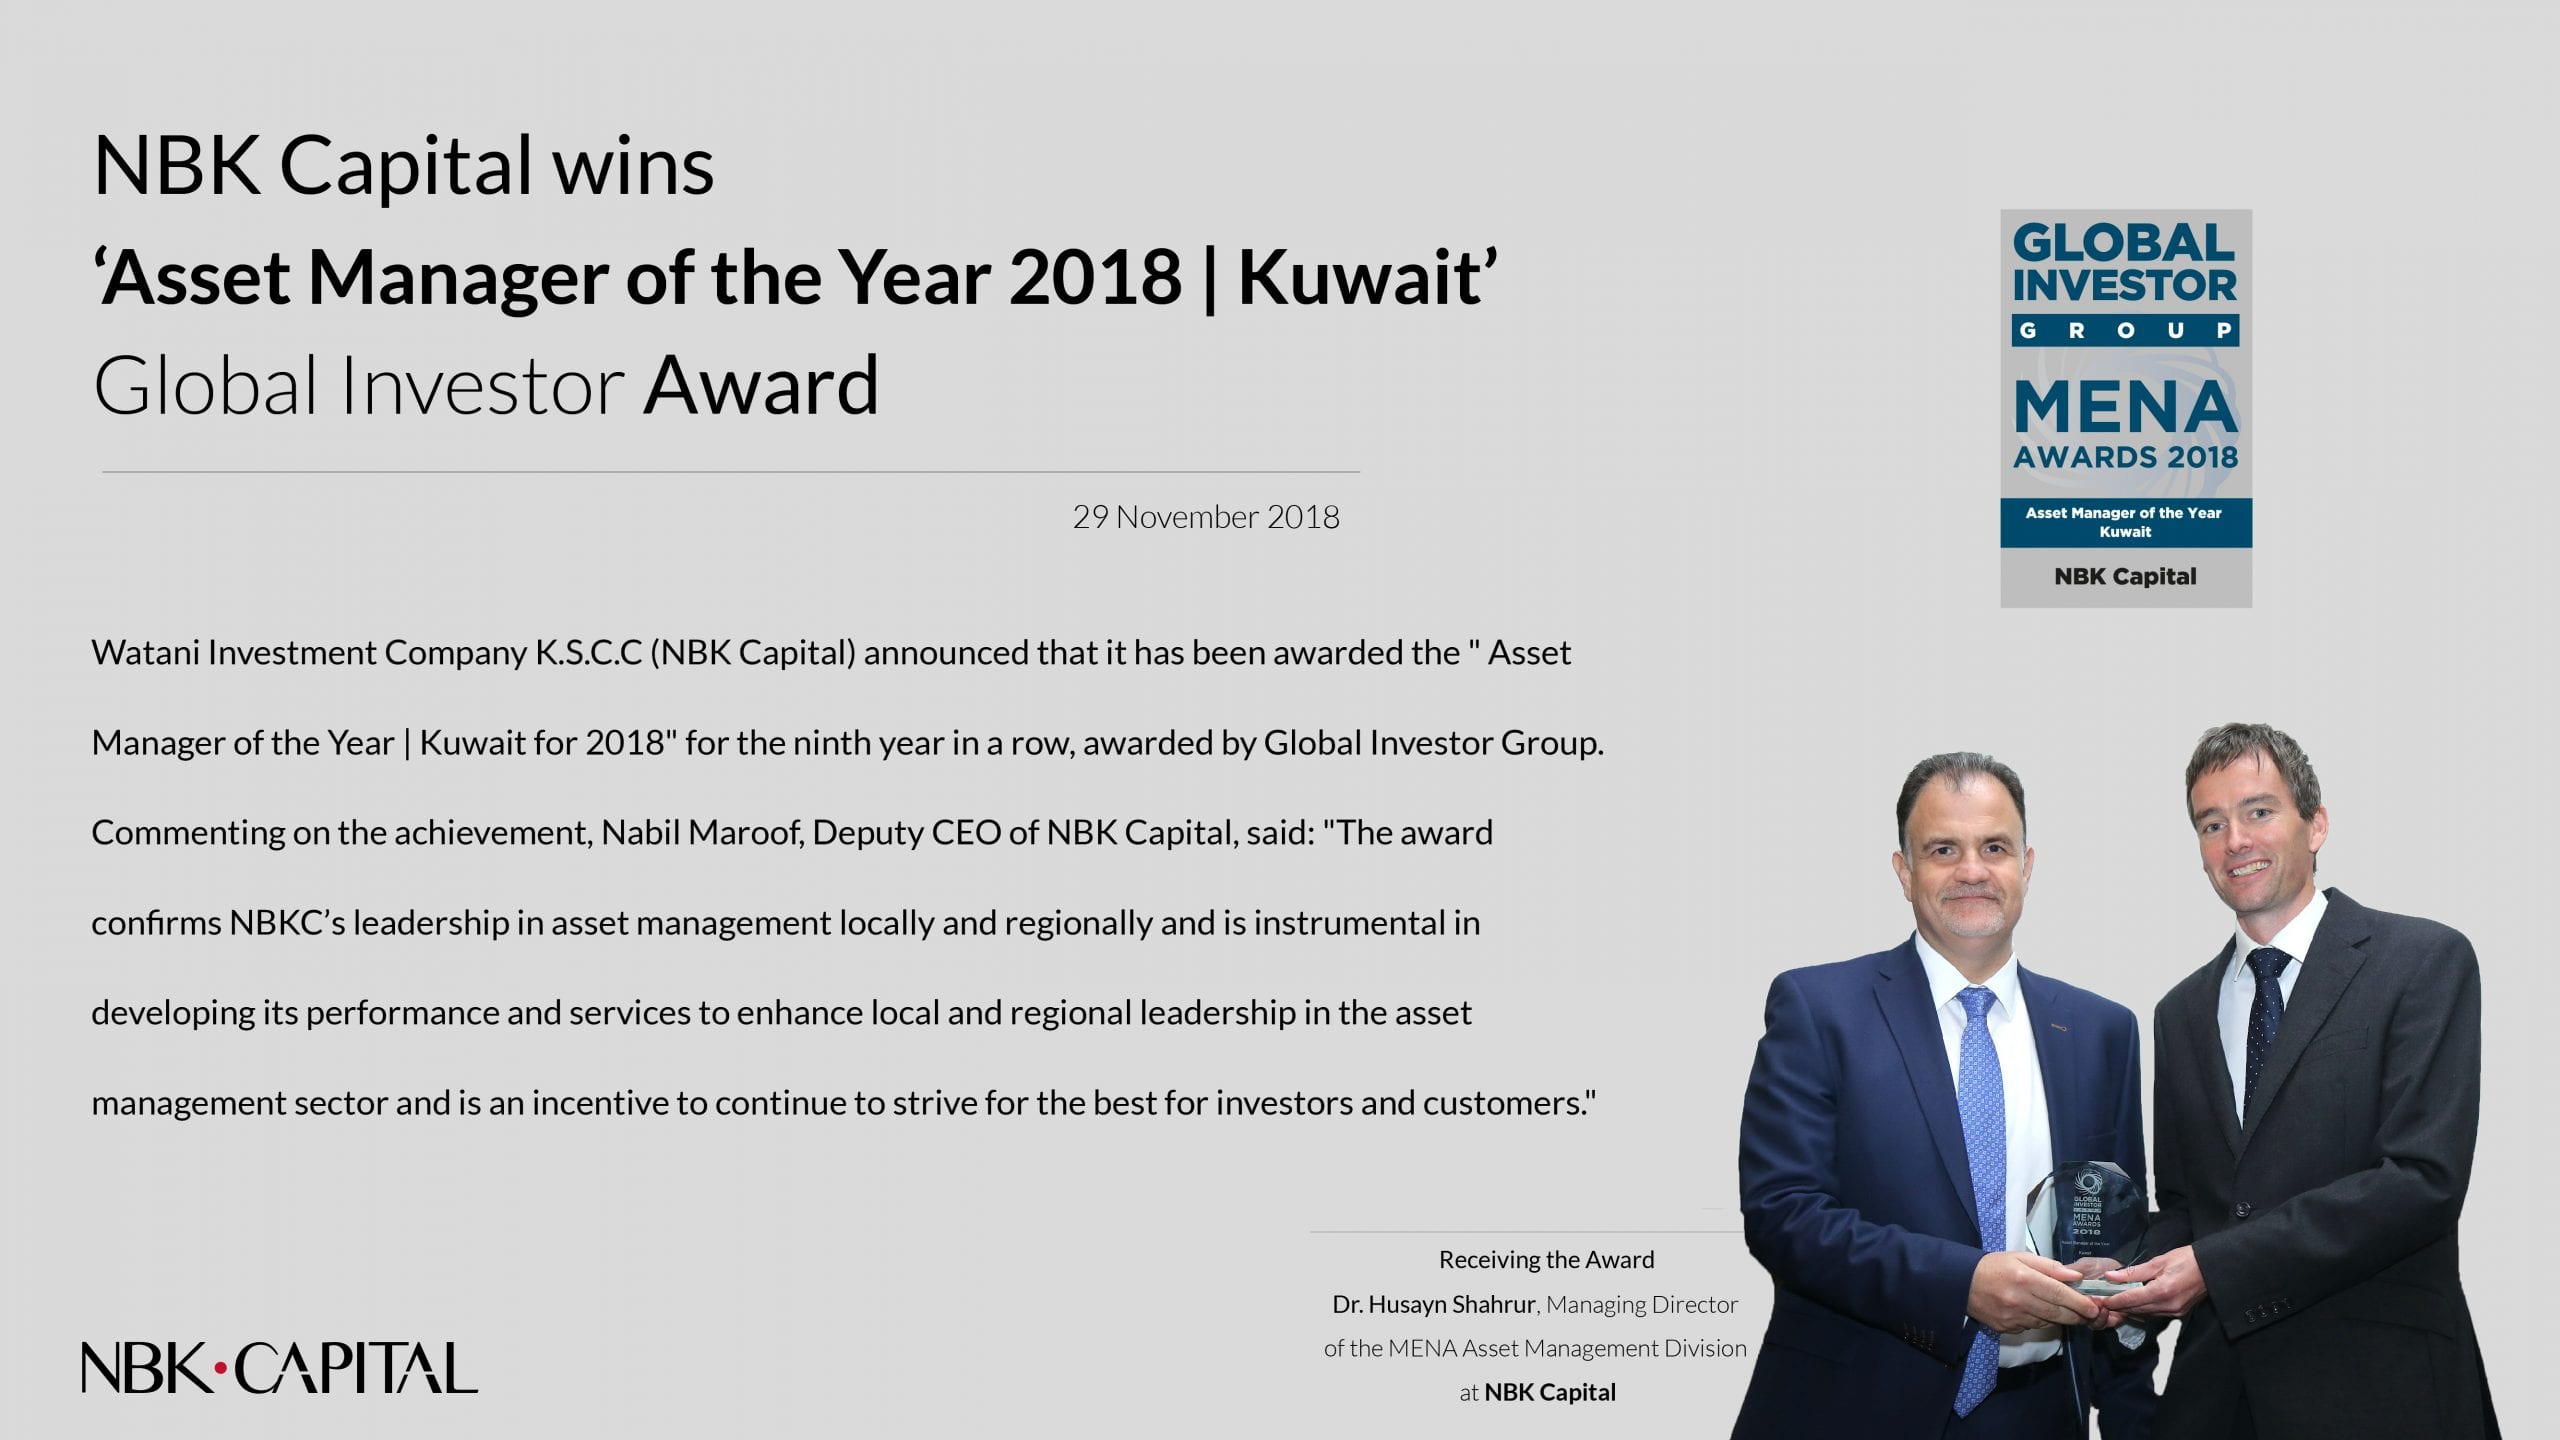 NBK Capital wins 'Asset Manager of the Year 2018 | Kuwait' Global Investor Award